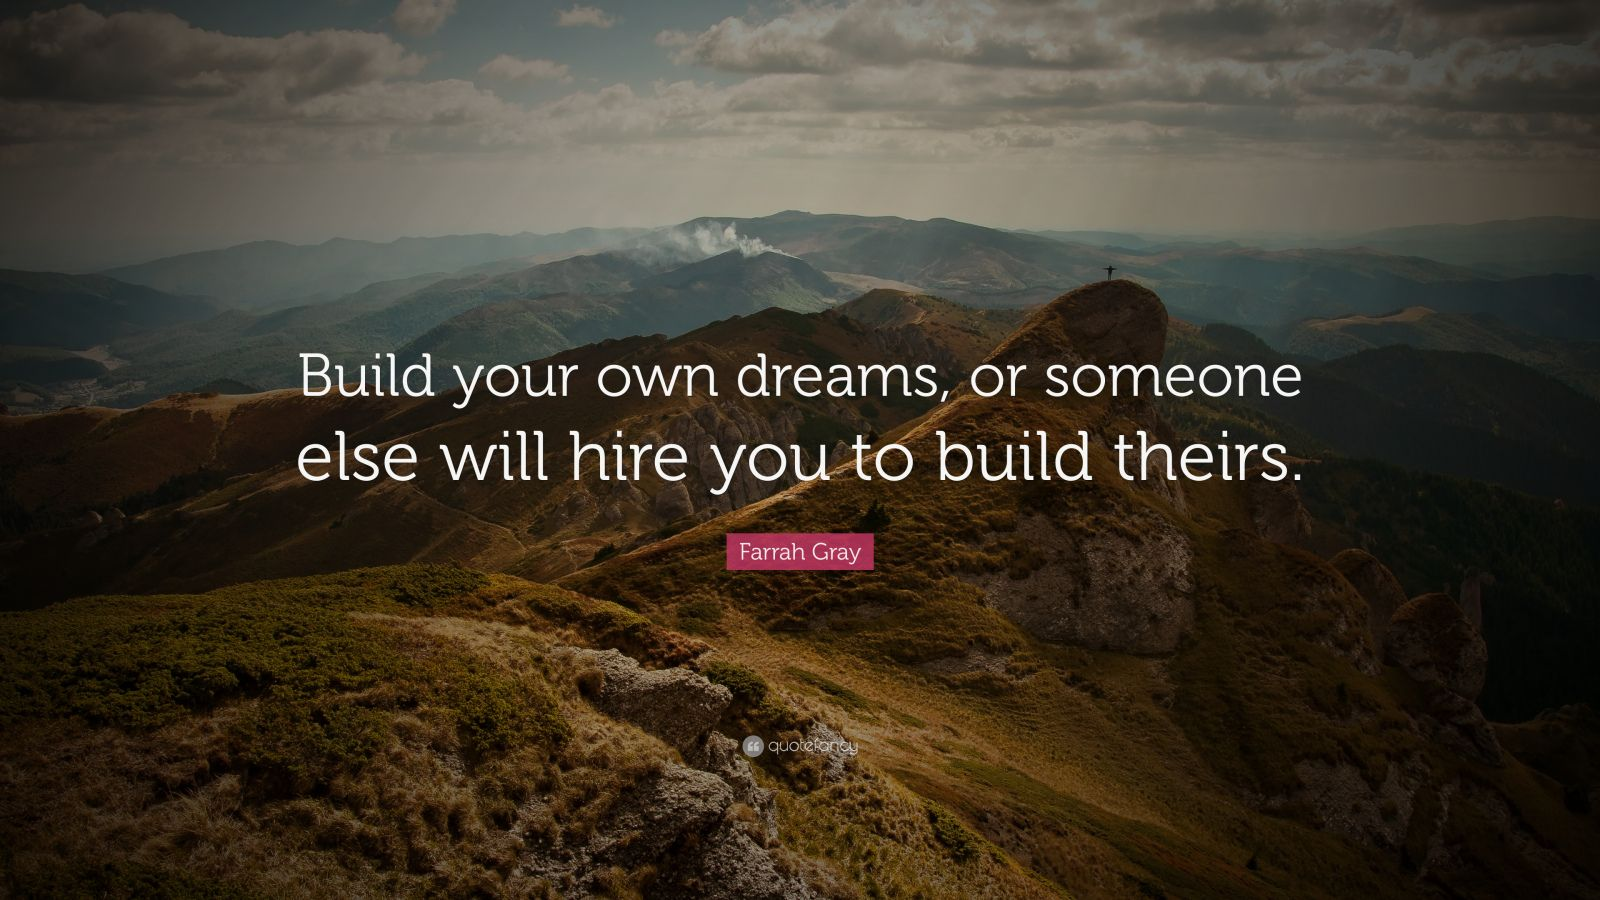 Elon Musk Quotes Wallpapers Farrah Gray Quote Build Your Own Dreams Or Someone Else